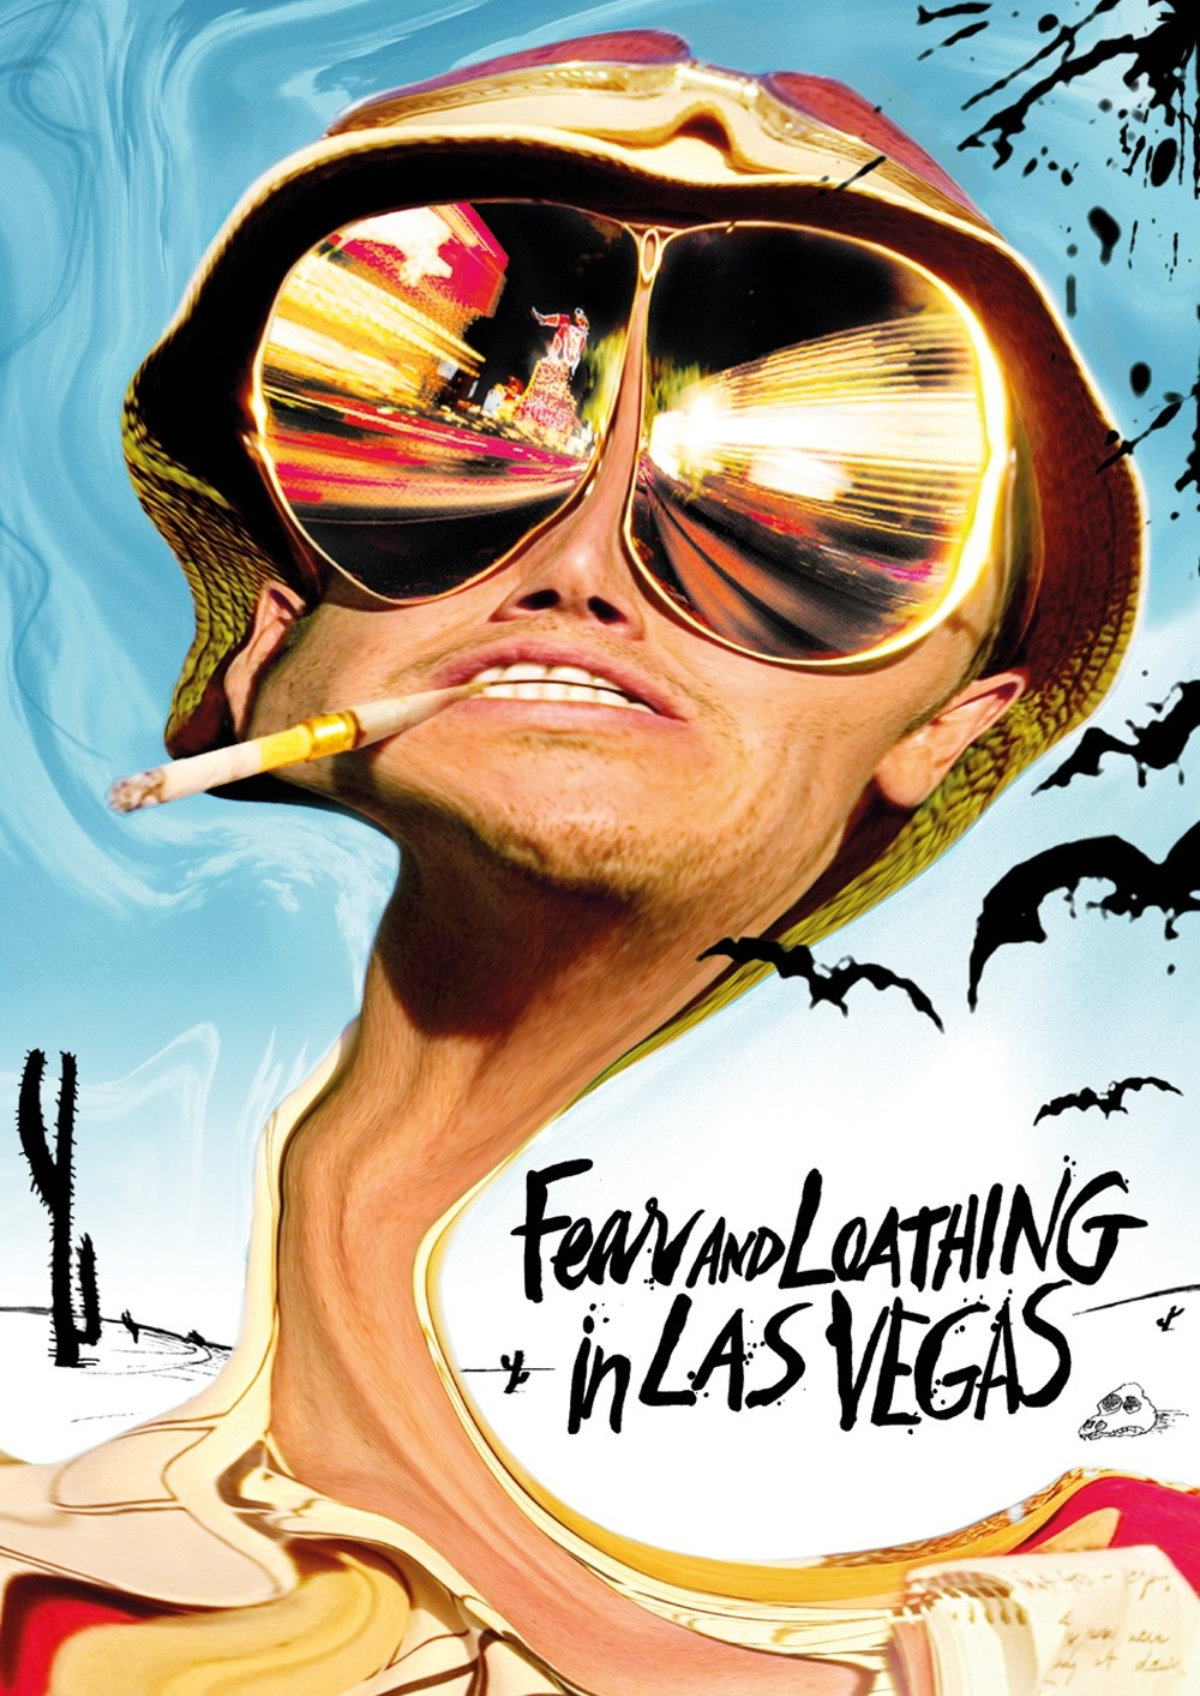 'Fear and Loathing in Las Vegas' movie poster